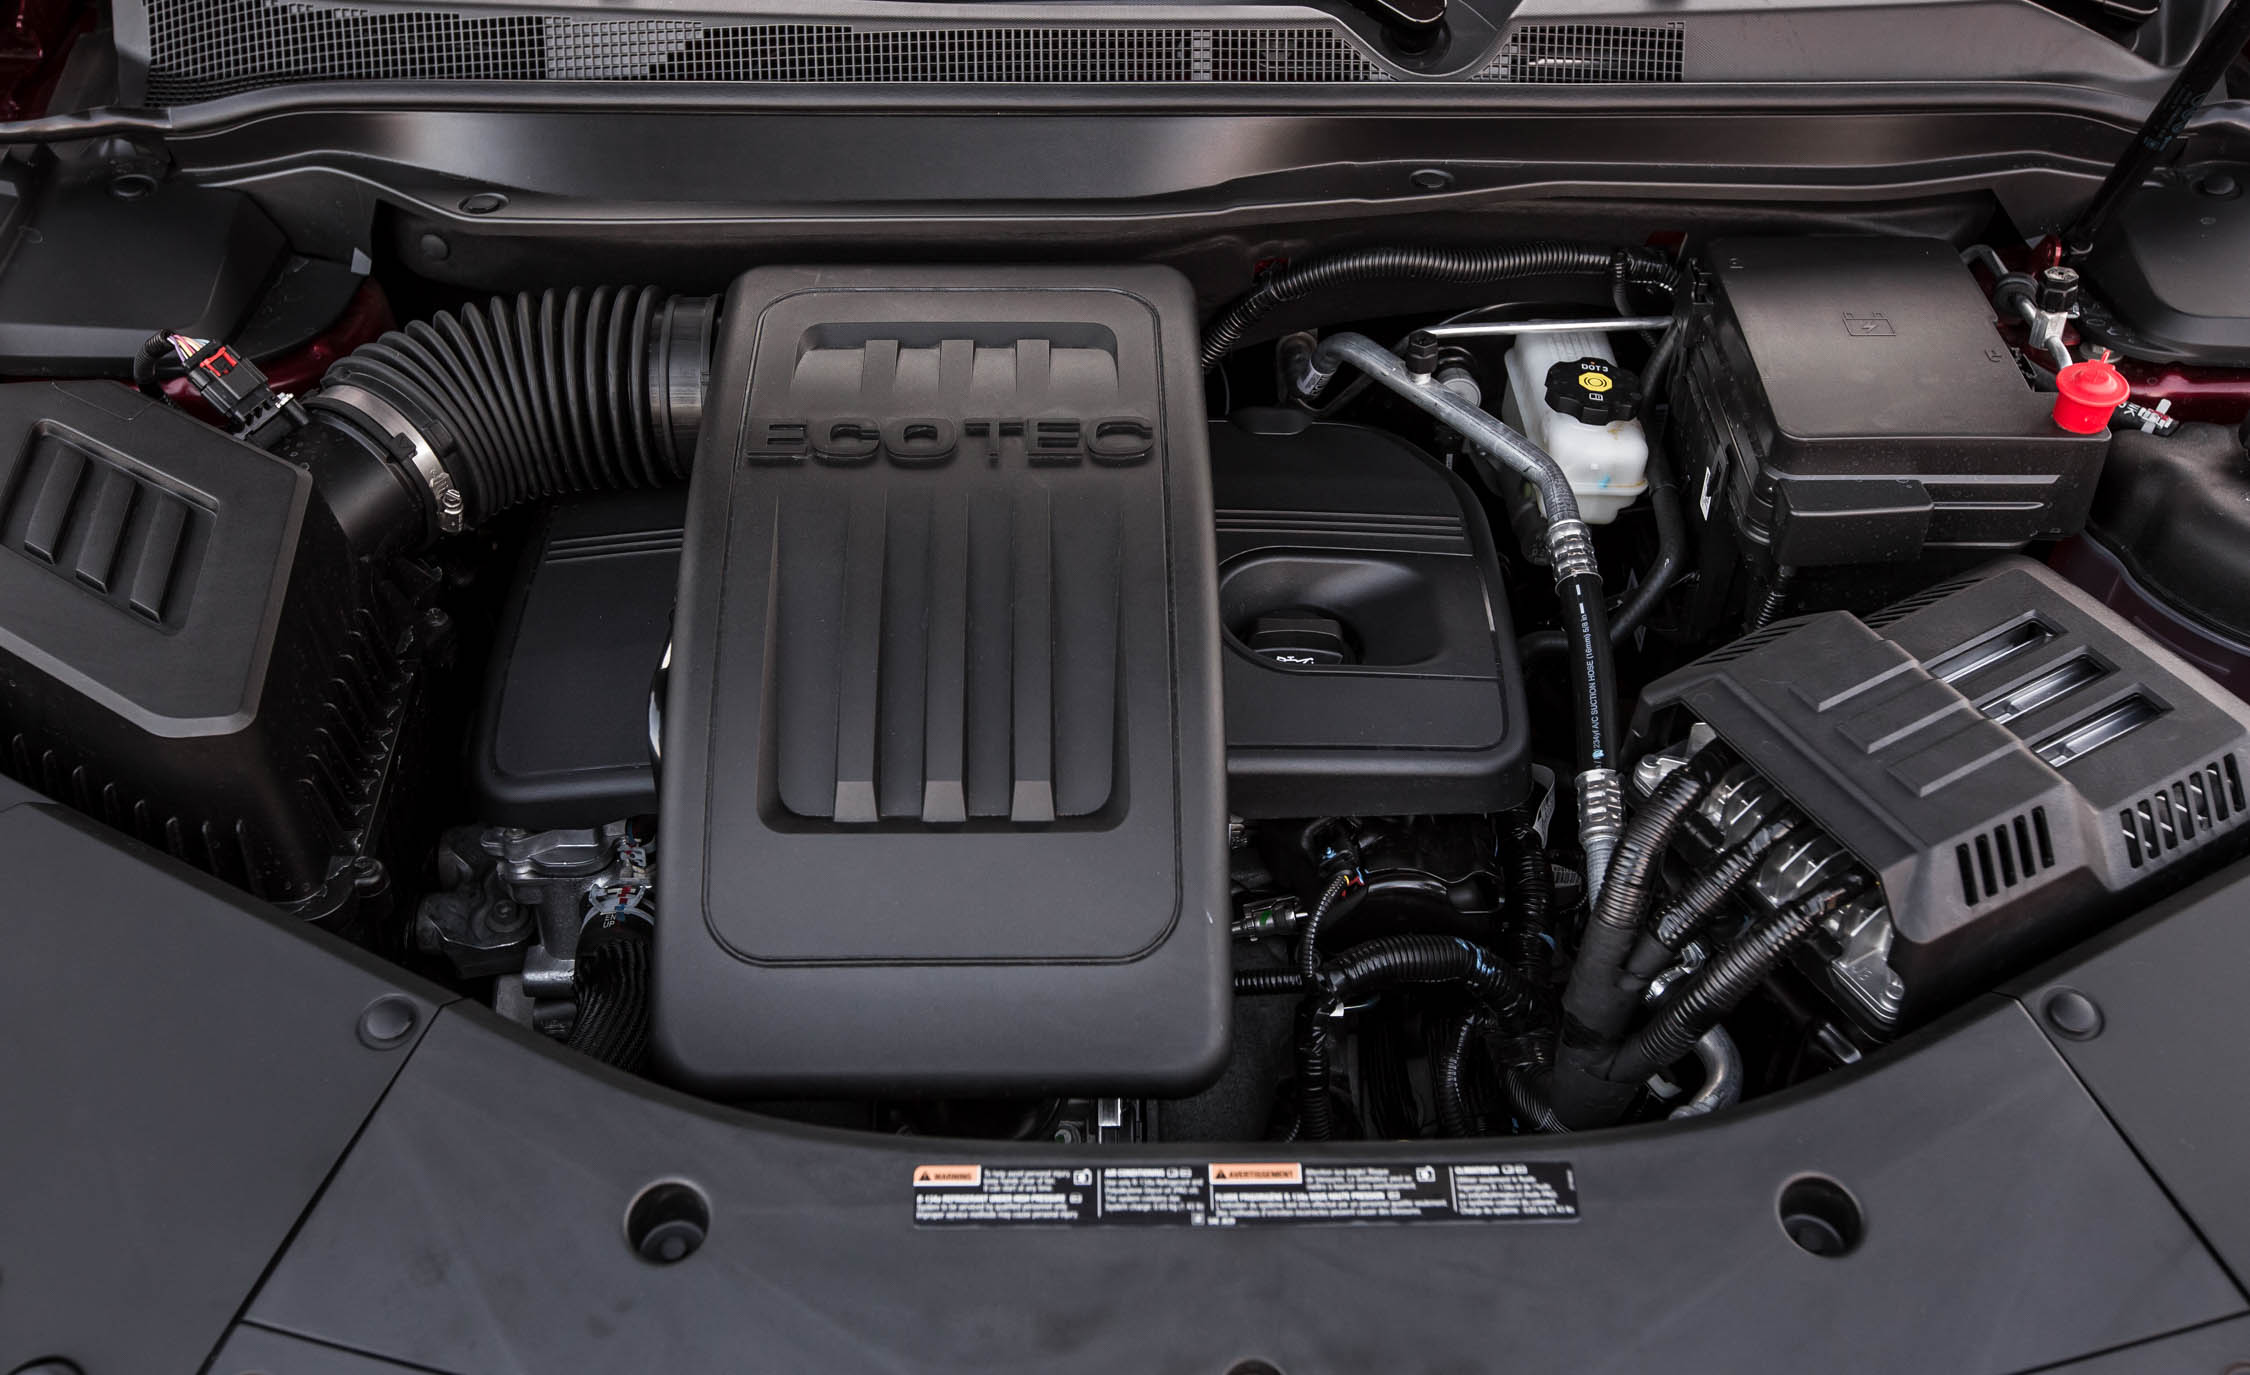 2016 Chevrolet Equinox LTZ Engine